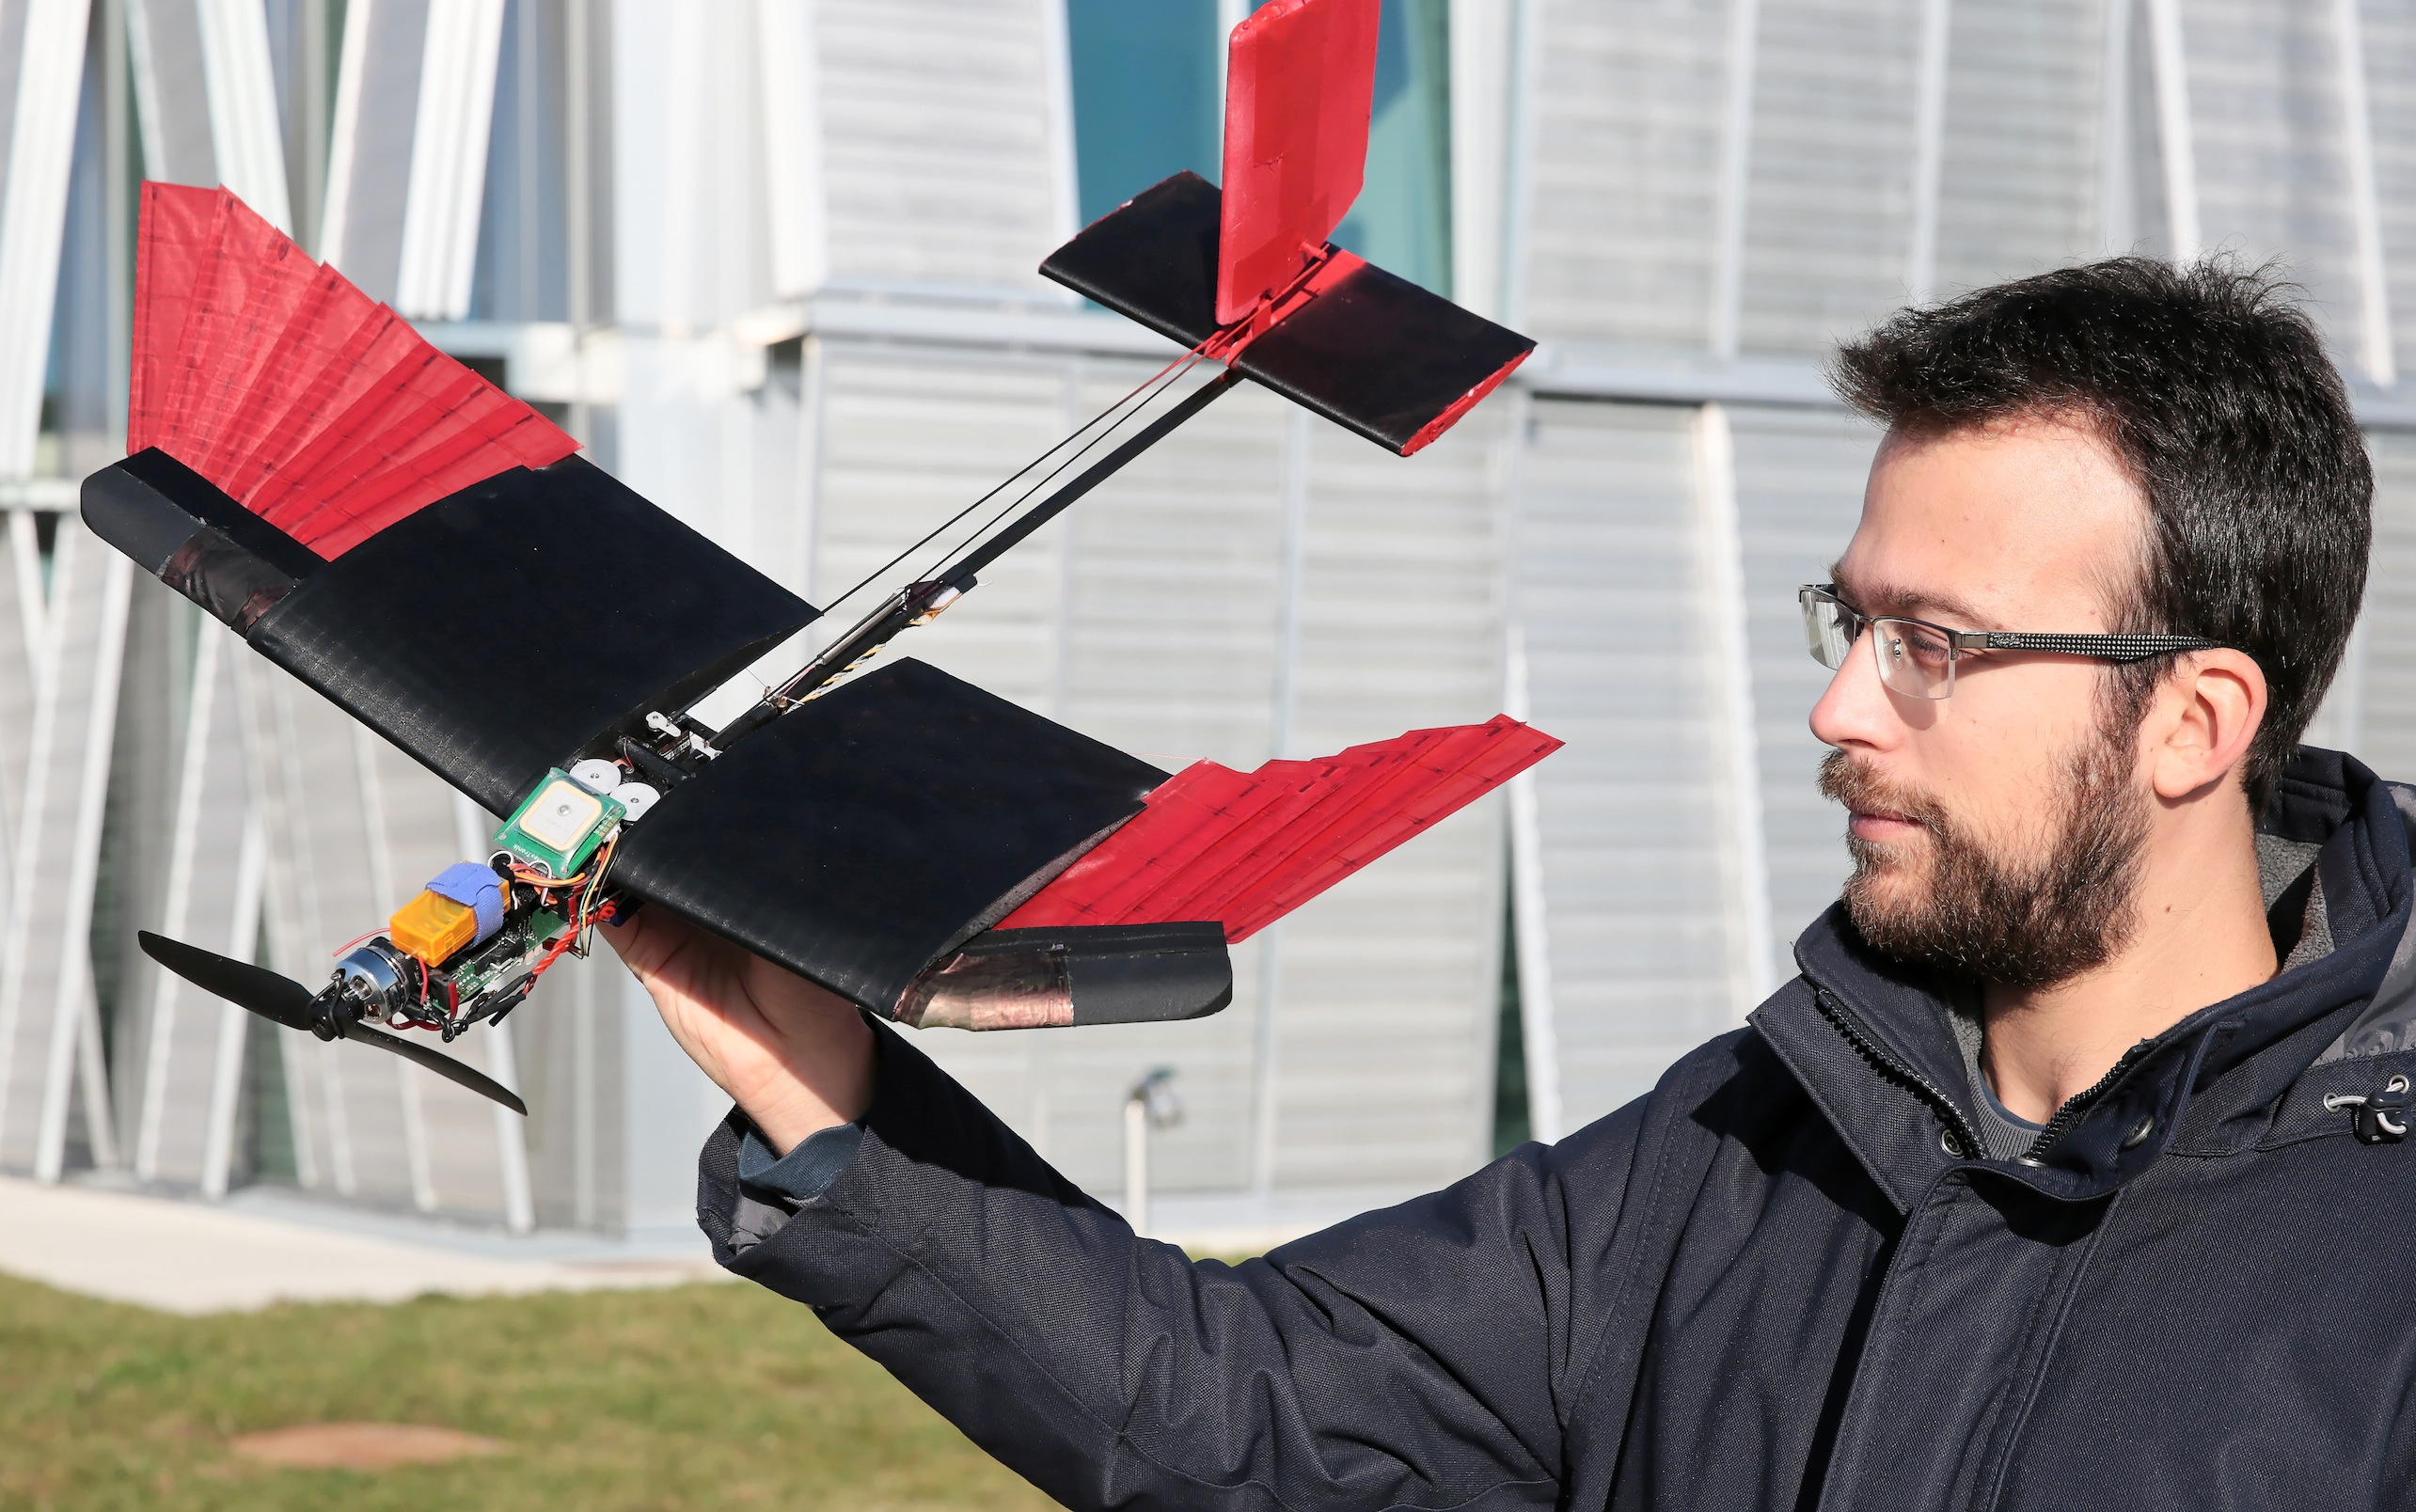 drone- Researchers Create Feathered Drone for Easier Maneuverability